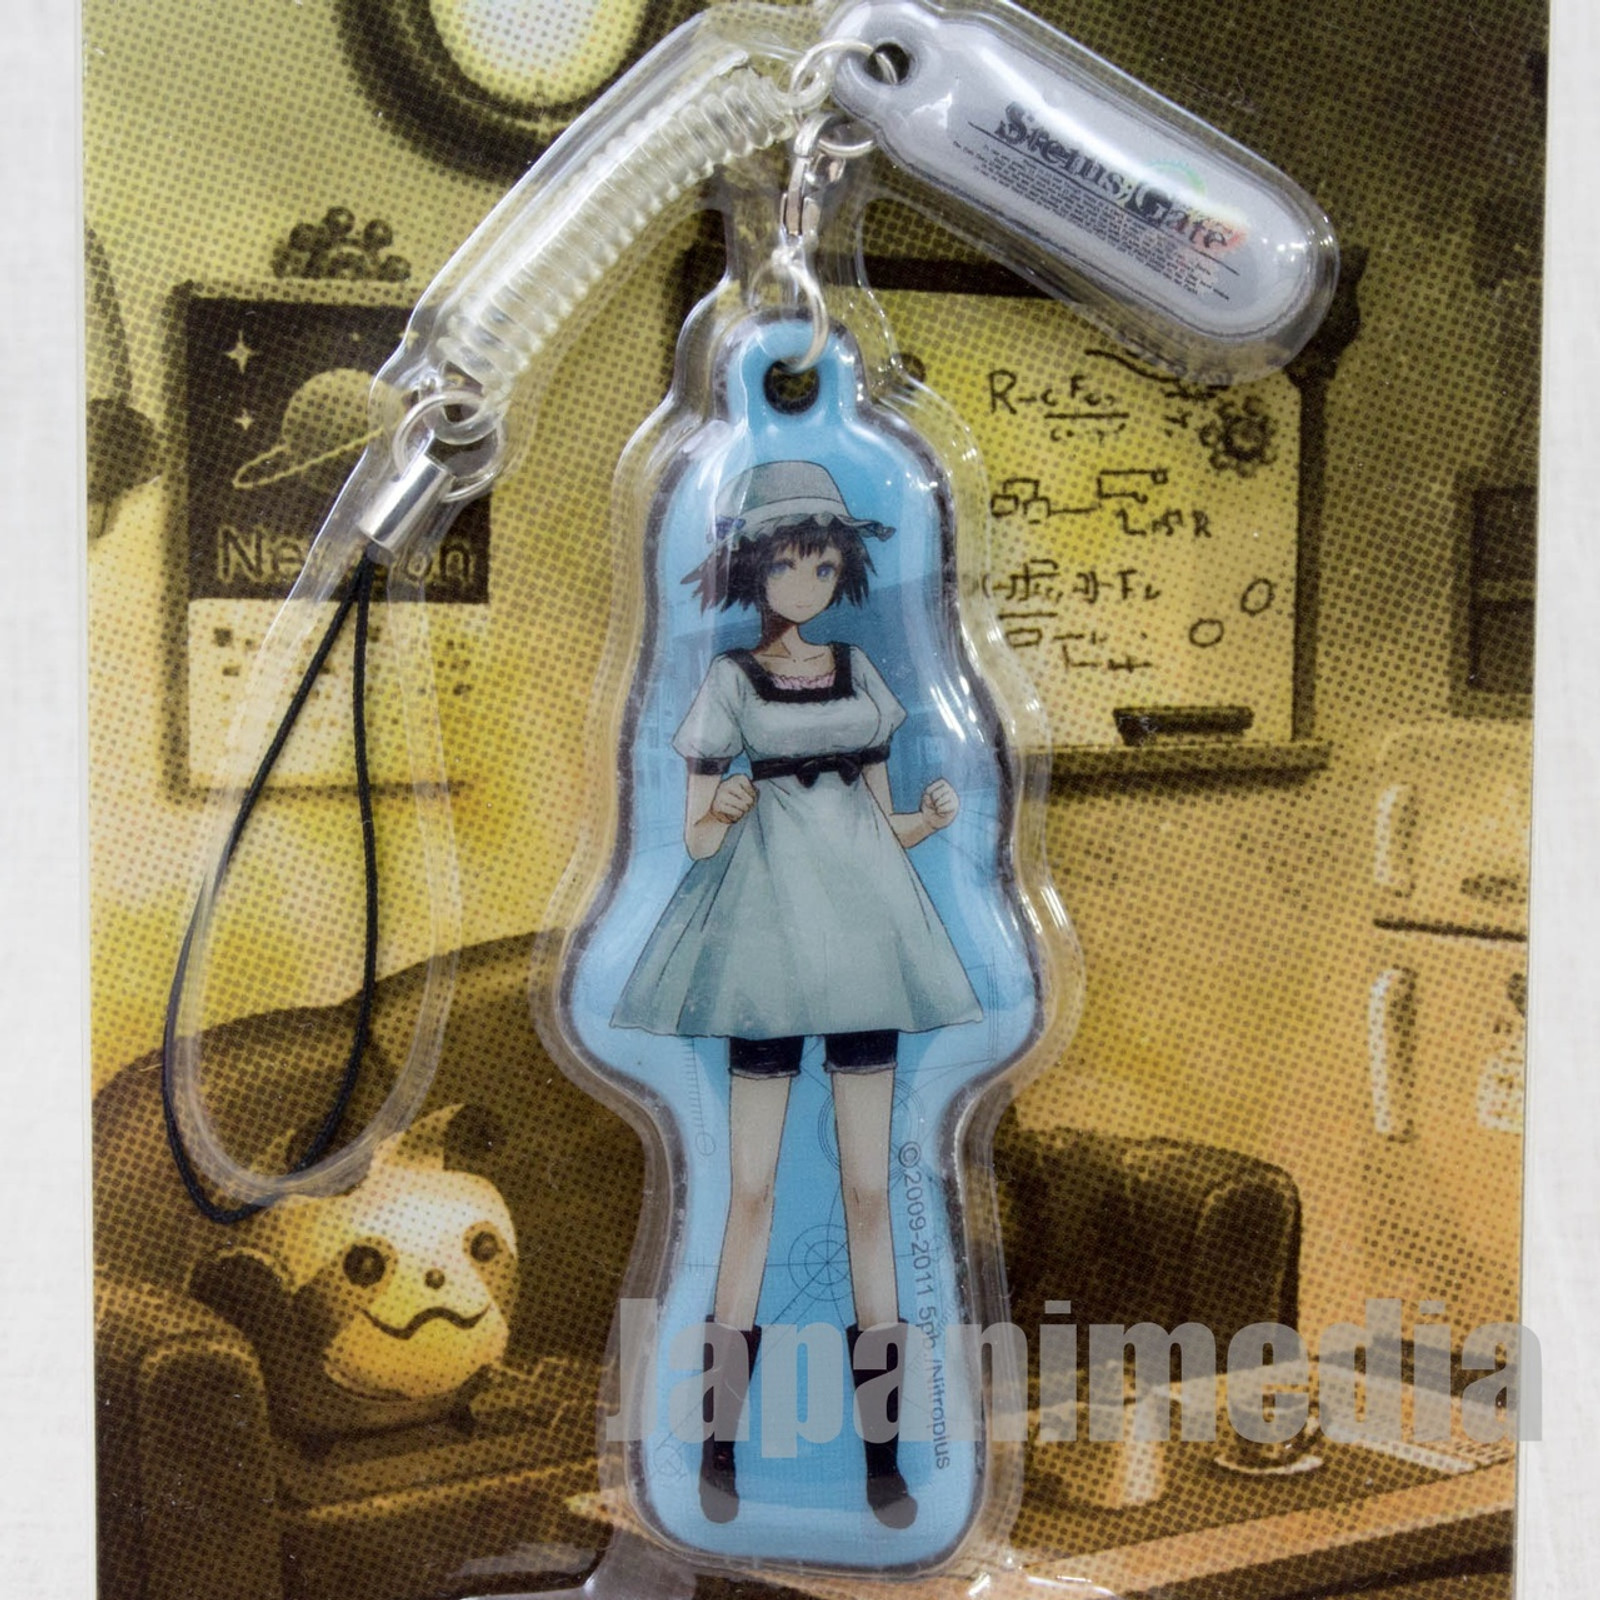 Steins ; Gate Mayuri Shiina Display Cleaner Mascot Strap Taito JAPAN ANIME